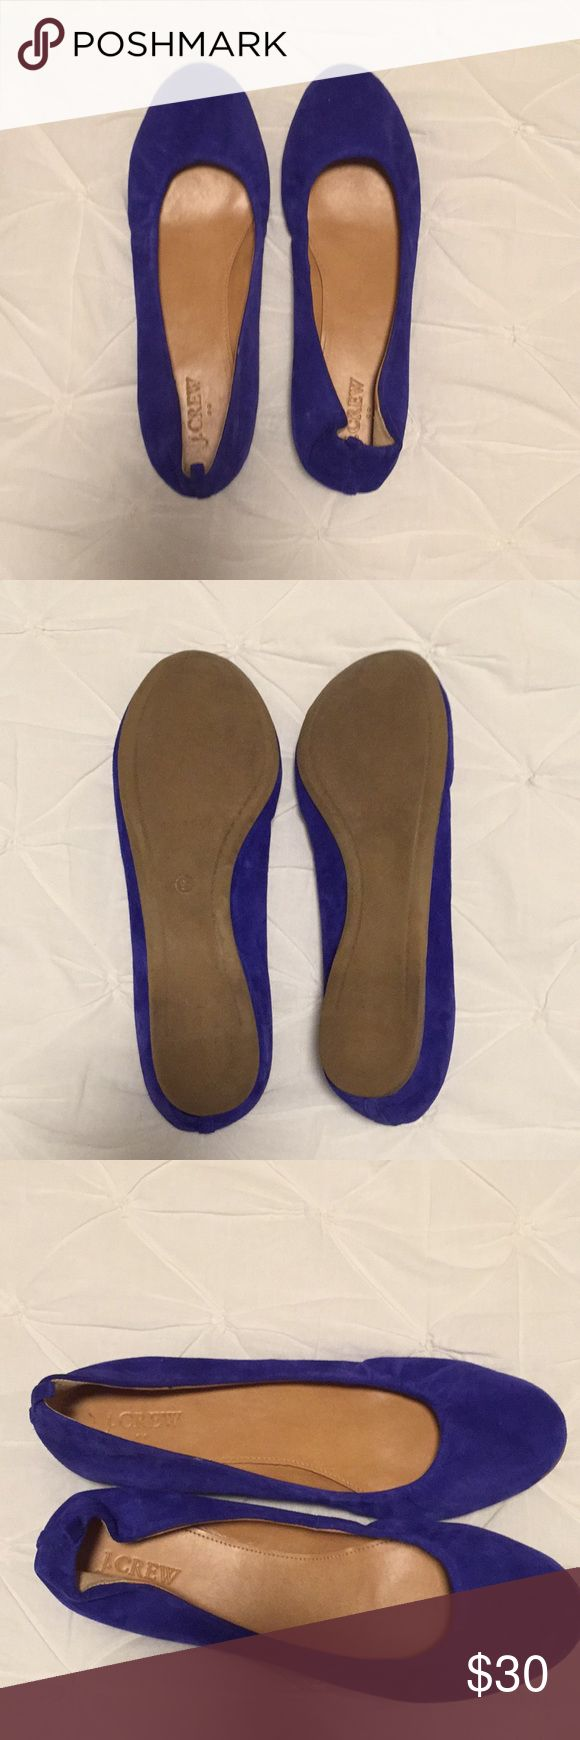 Blue suede shoes! Darling outfit makers, never been worn size 8 1/2 J. Crew ballet flats J. Crew Shoes Flats & Loafers